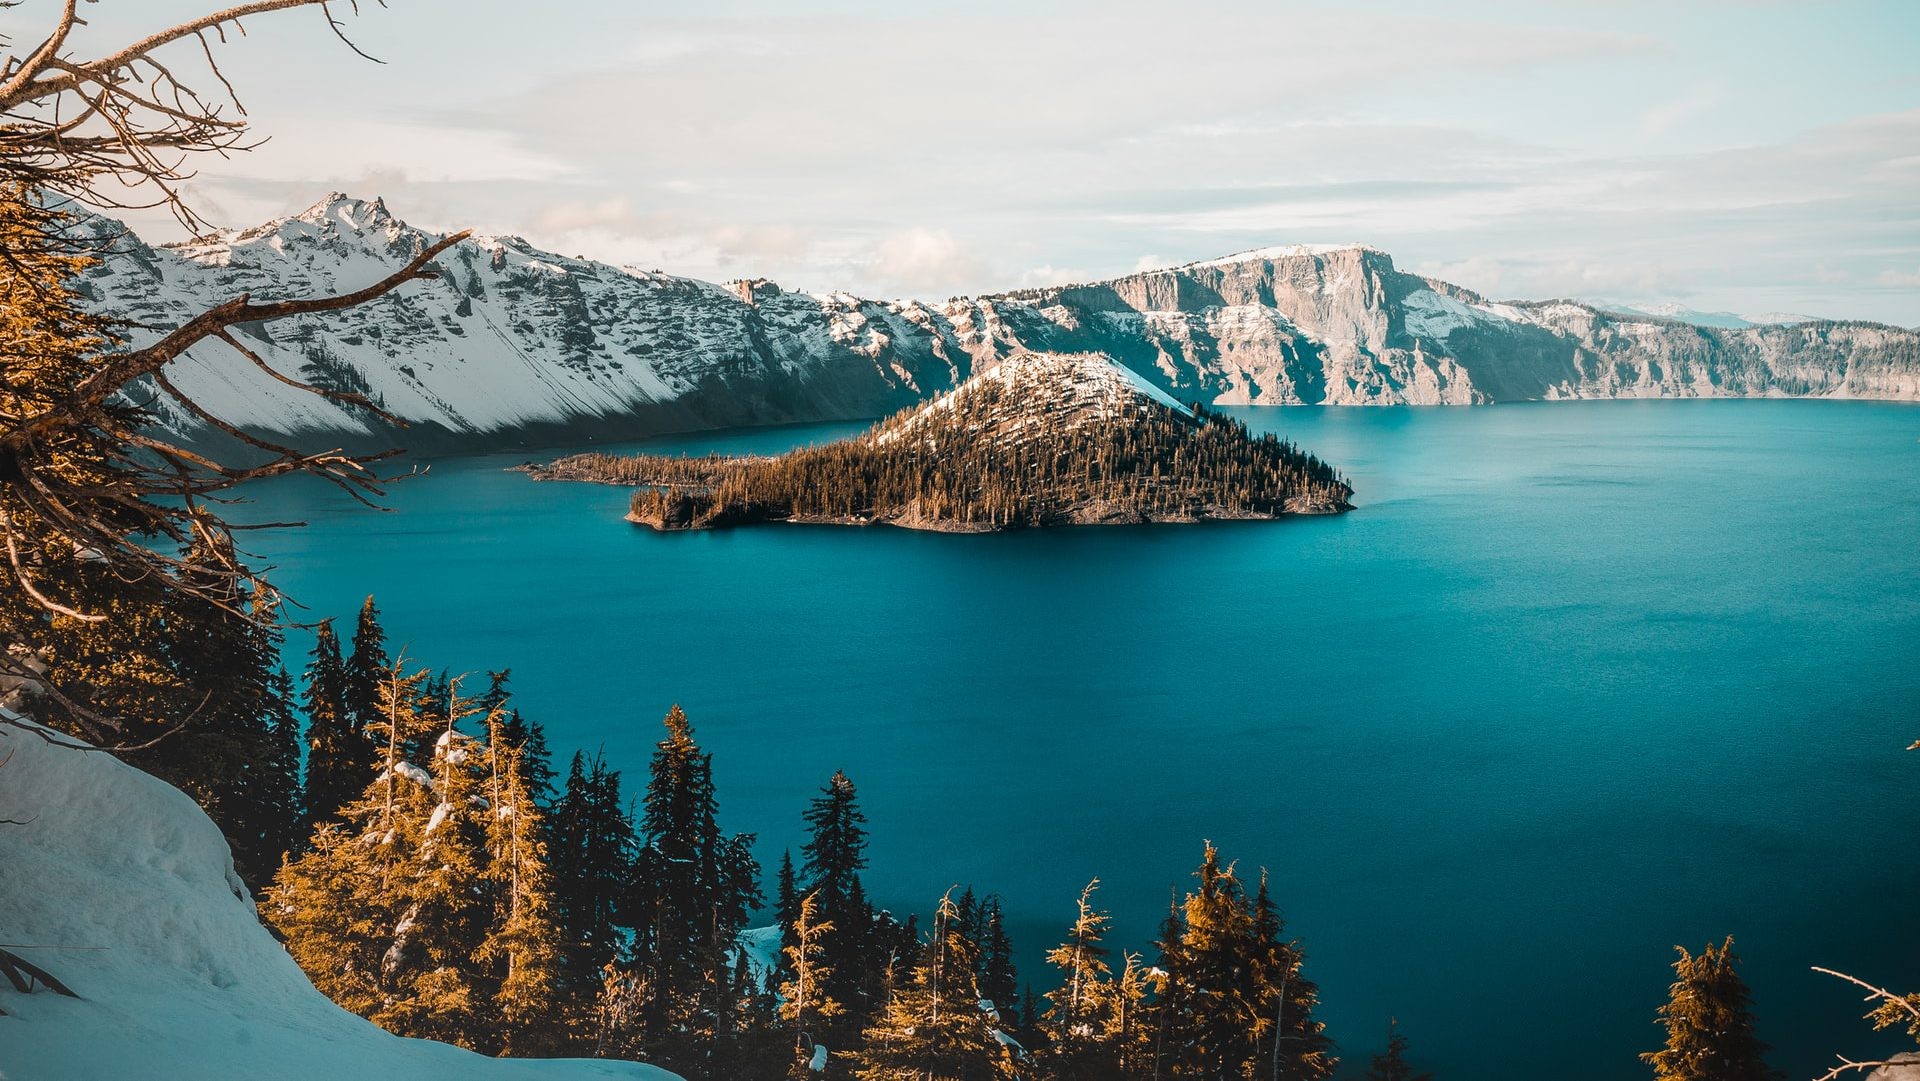 Crater Lake in Oregon must be on your list of must-see destinations in the U.S.